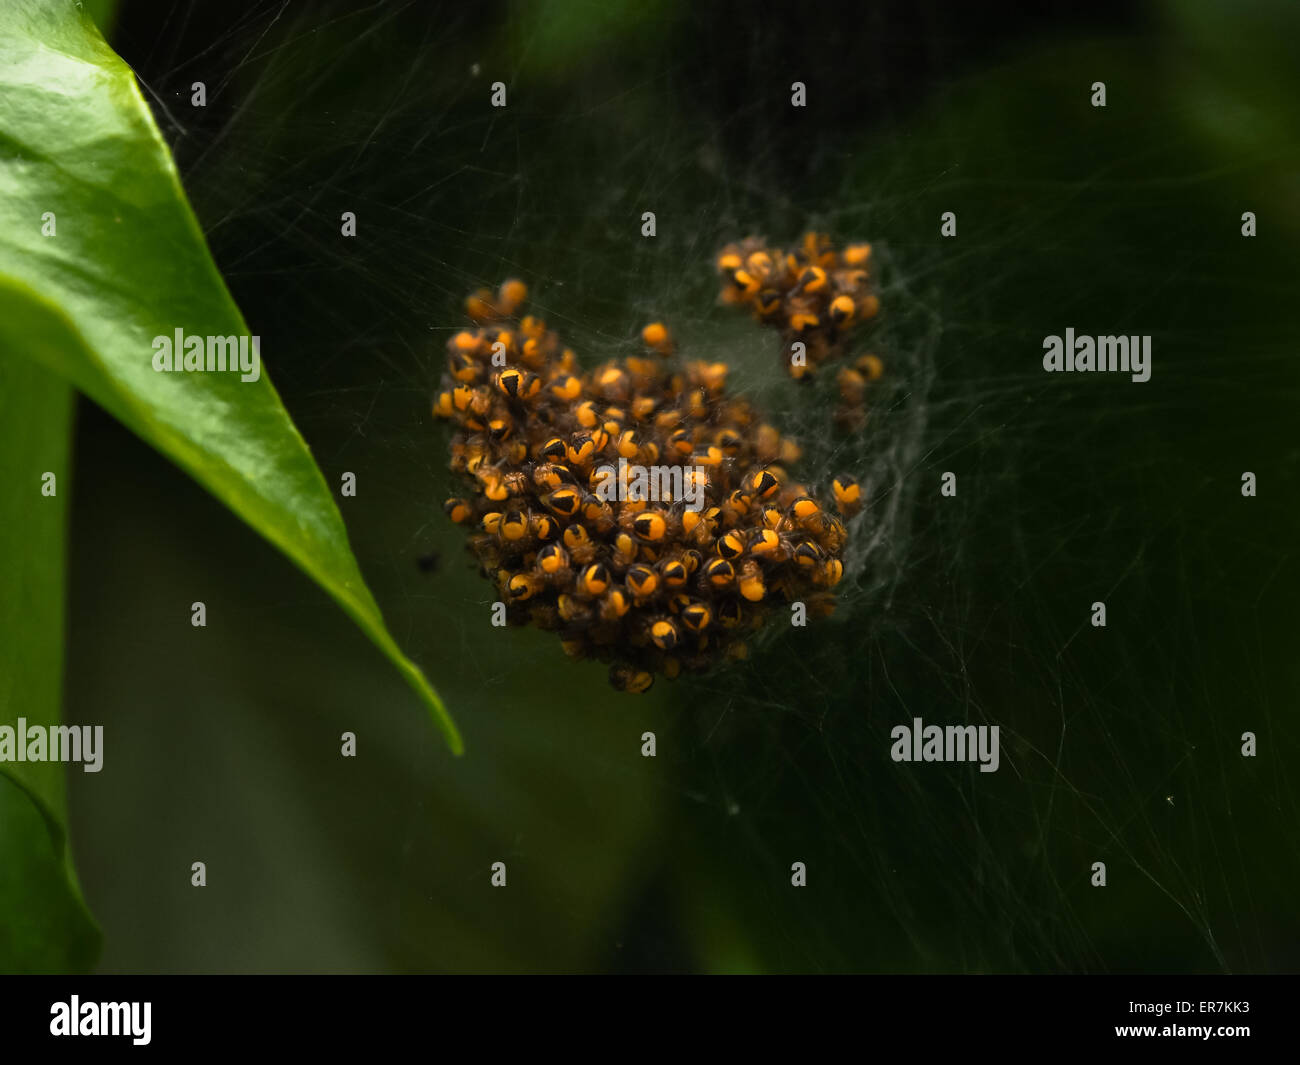 a close up of an orb of spiderlings - Stock Image